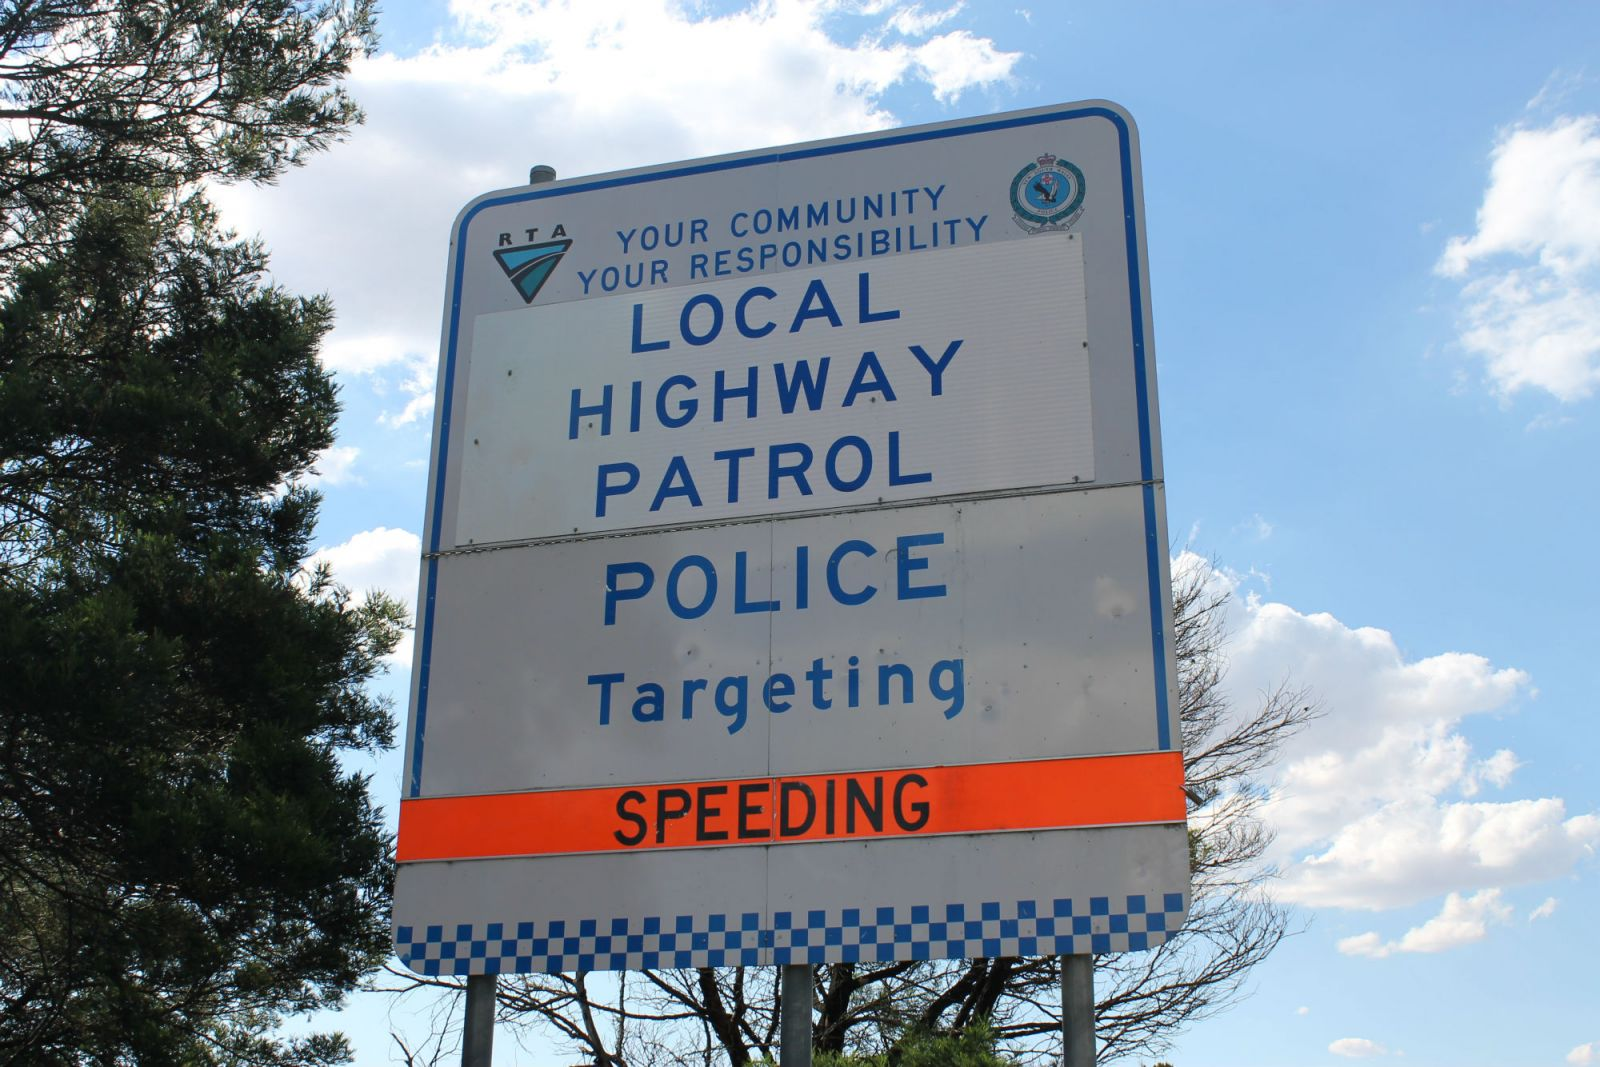 Police 'Wasting Time' With Low-Level Speeding As Fines Triple: RACV